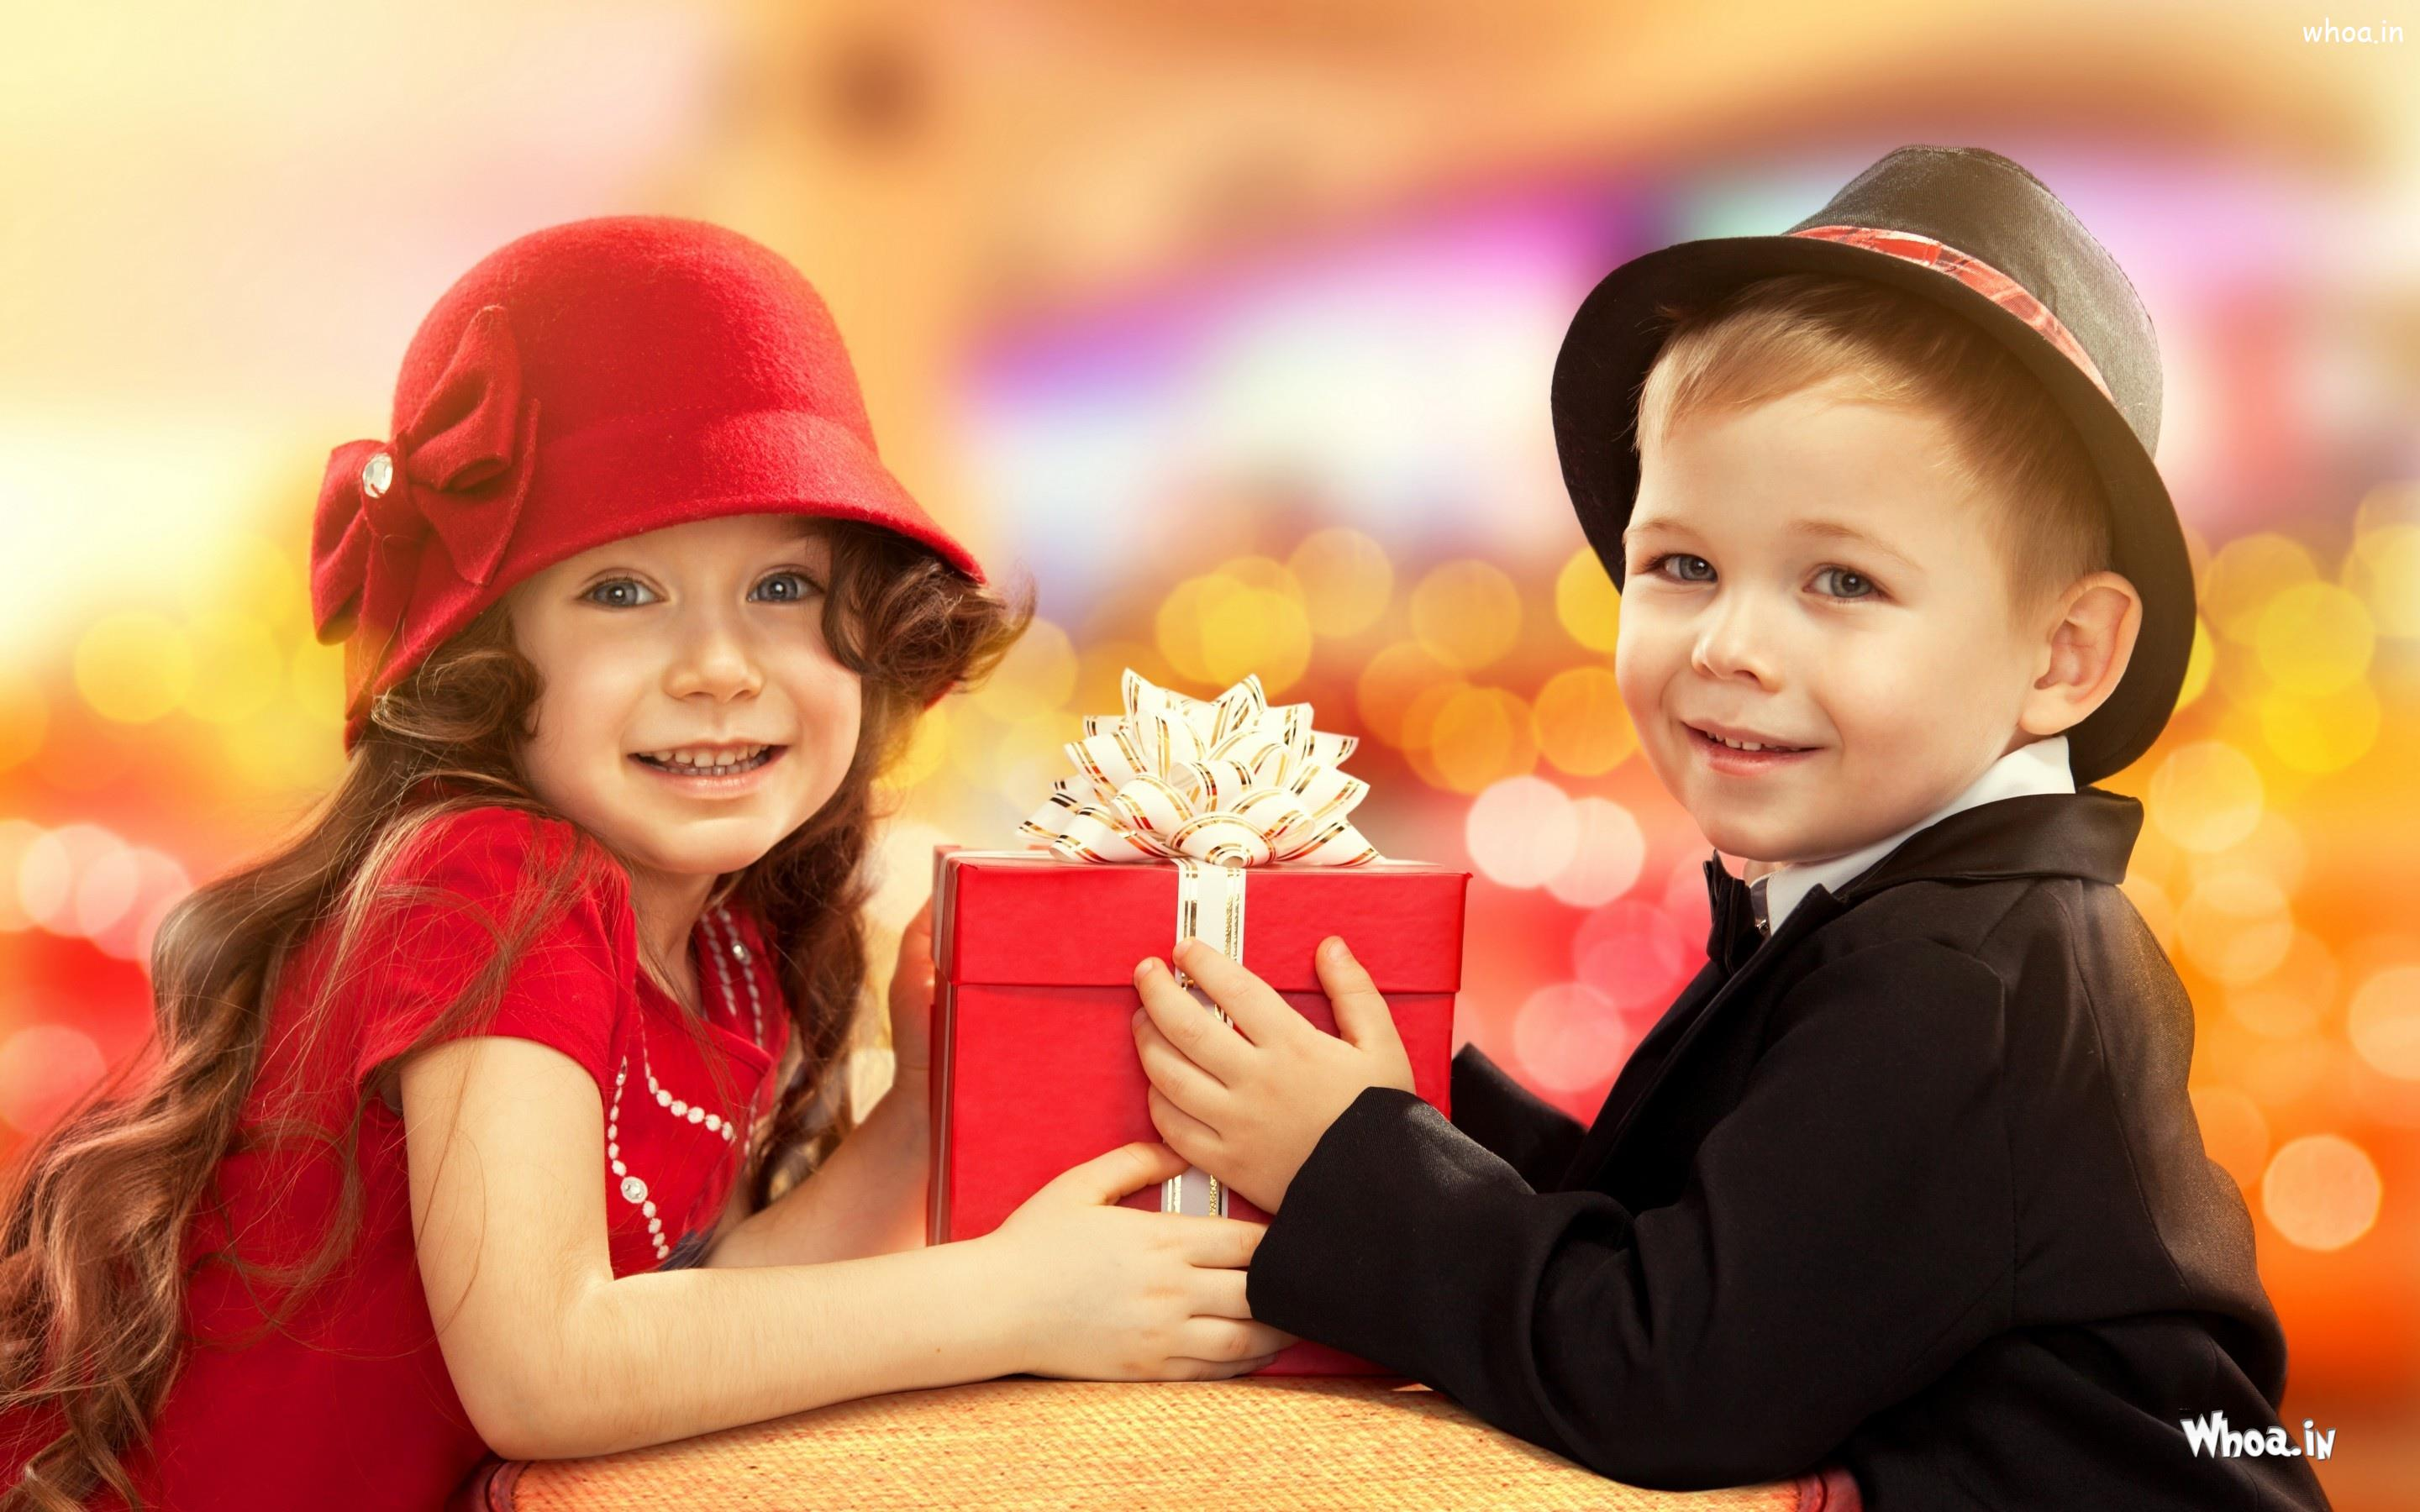 little boy gift to angle girl hd cute wallpaper